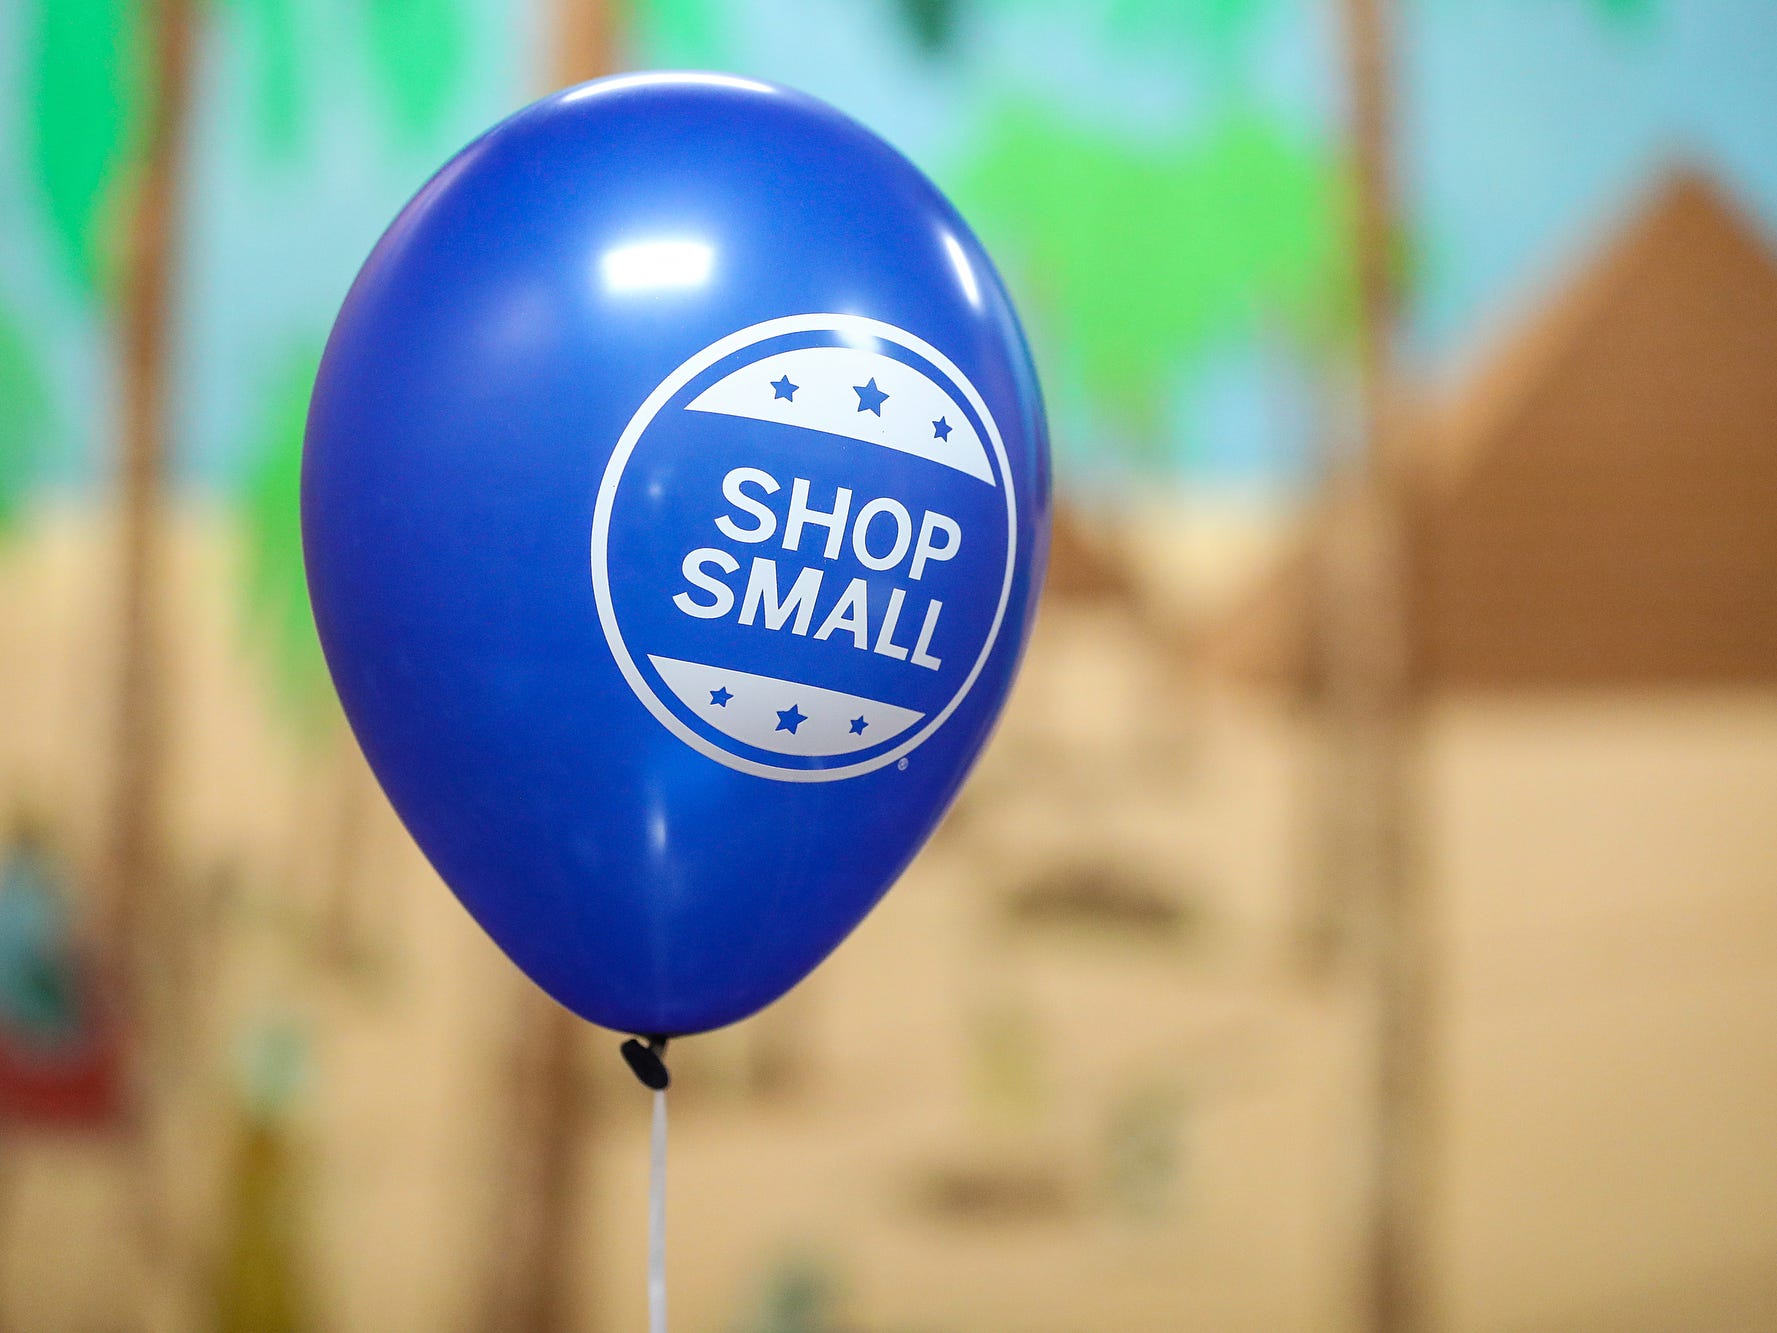 A balloon floats at a market showcasing more than 65 women and minority-owned small businesses at the Murat Shrine Temple in Indianapolis, Saturday, Nov. 24, 2018. The fifth annual event is part of Small Business Saturday, launched nationally by American Express eight years ago to help independently owned businesses bounce back from the recession.